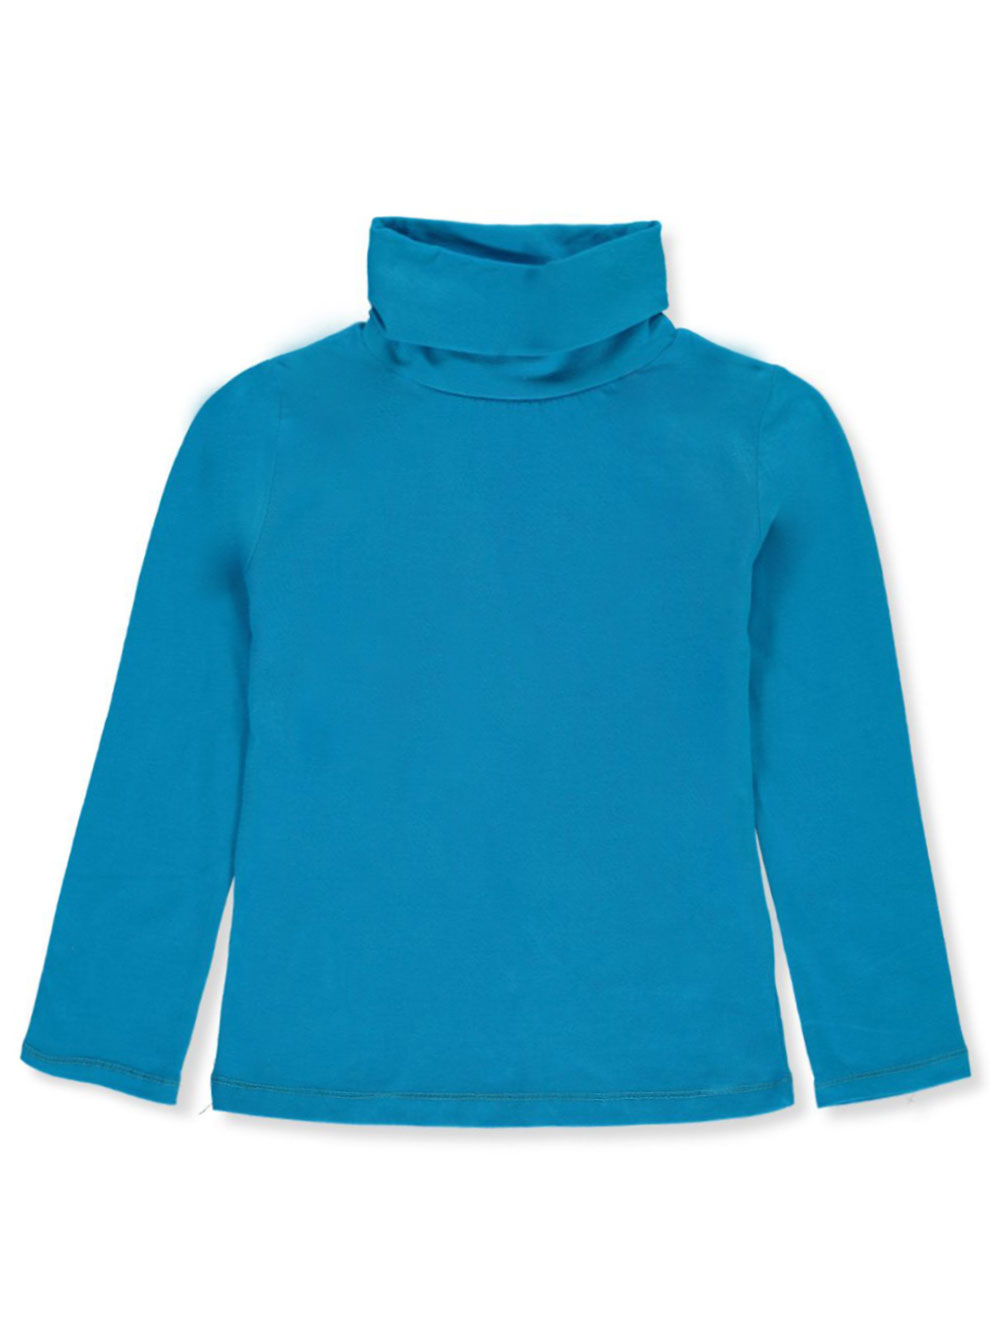 Girls' Stretch Neck Turtleneck